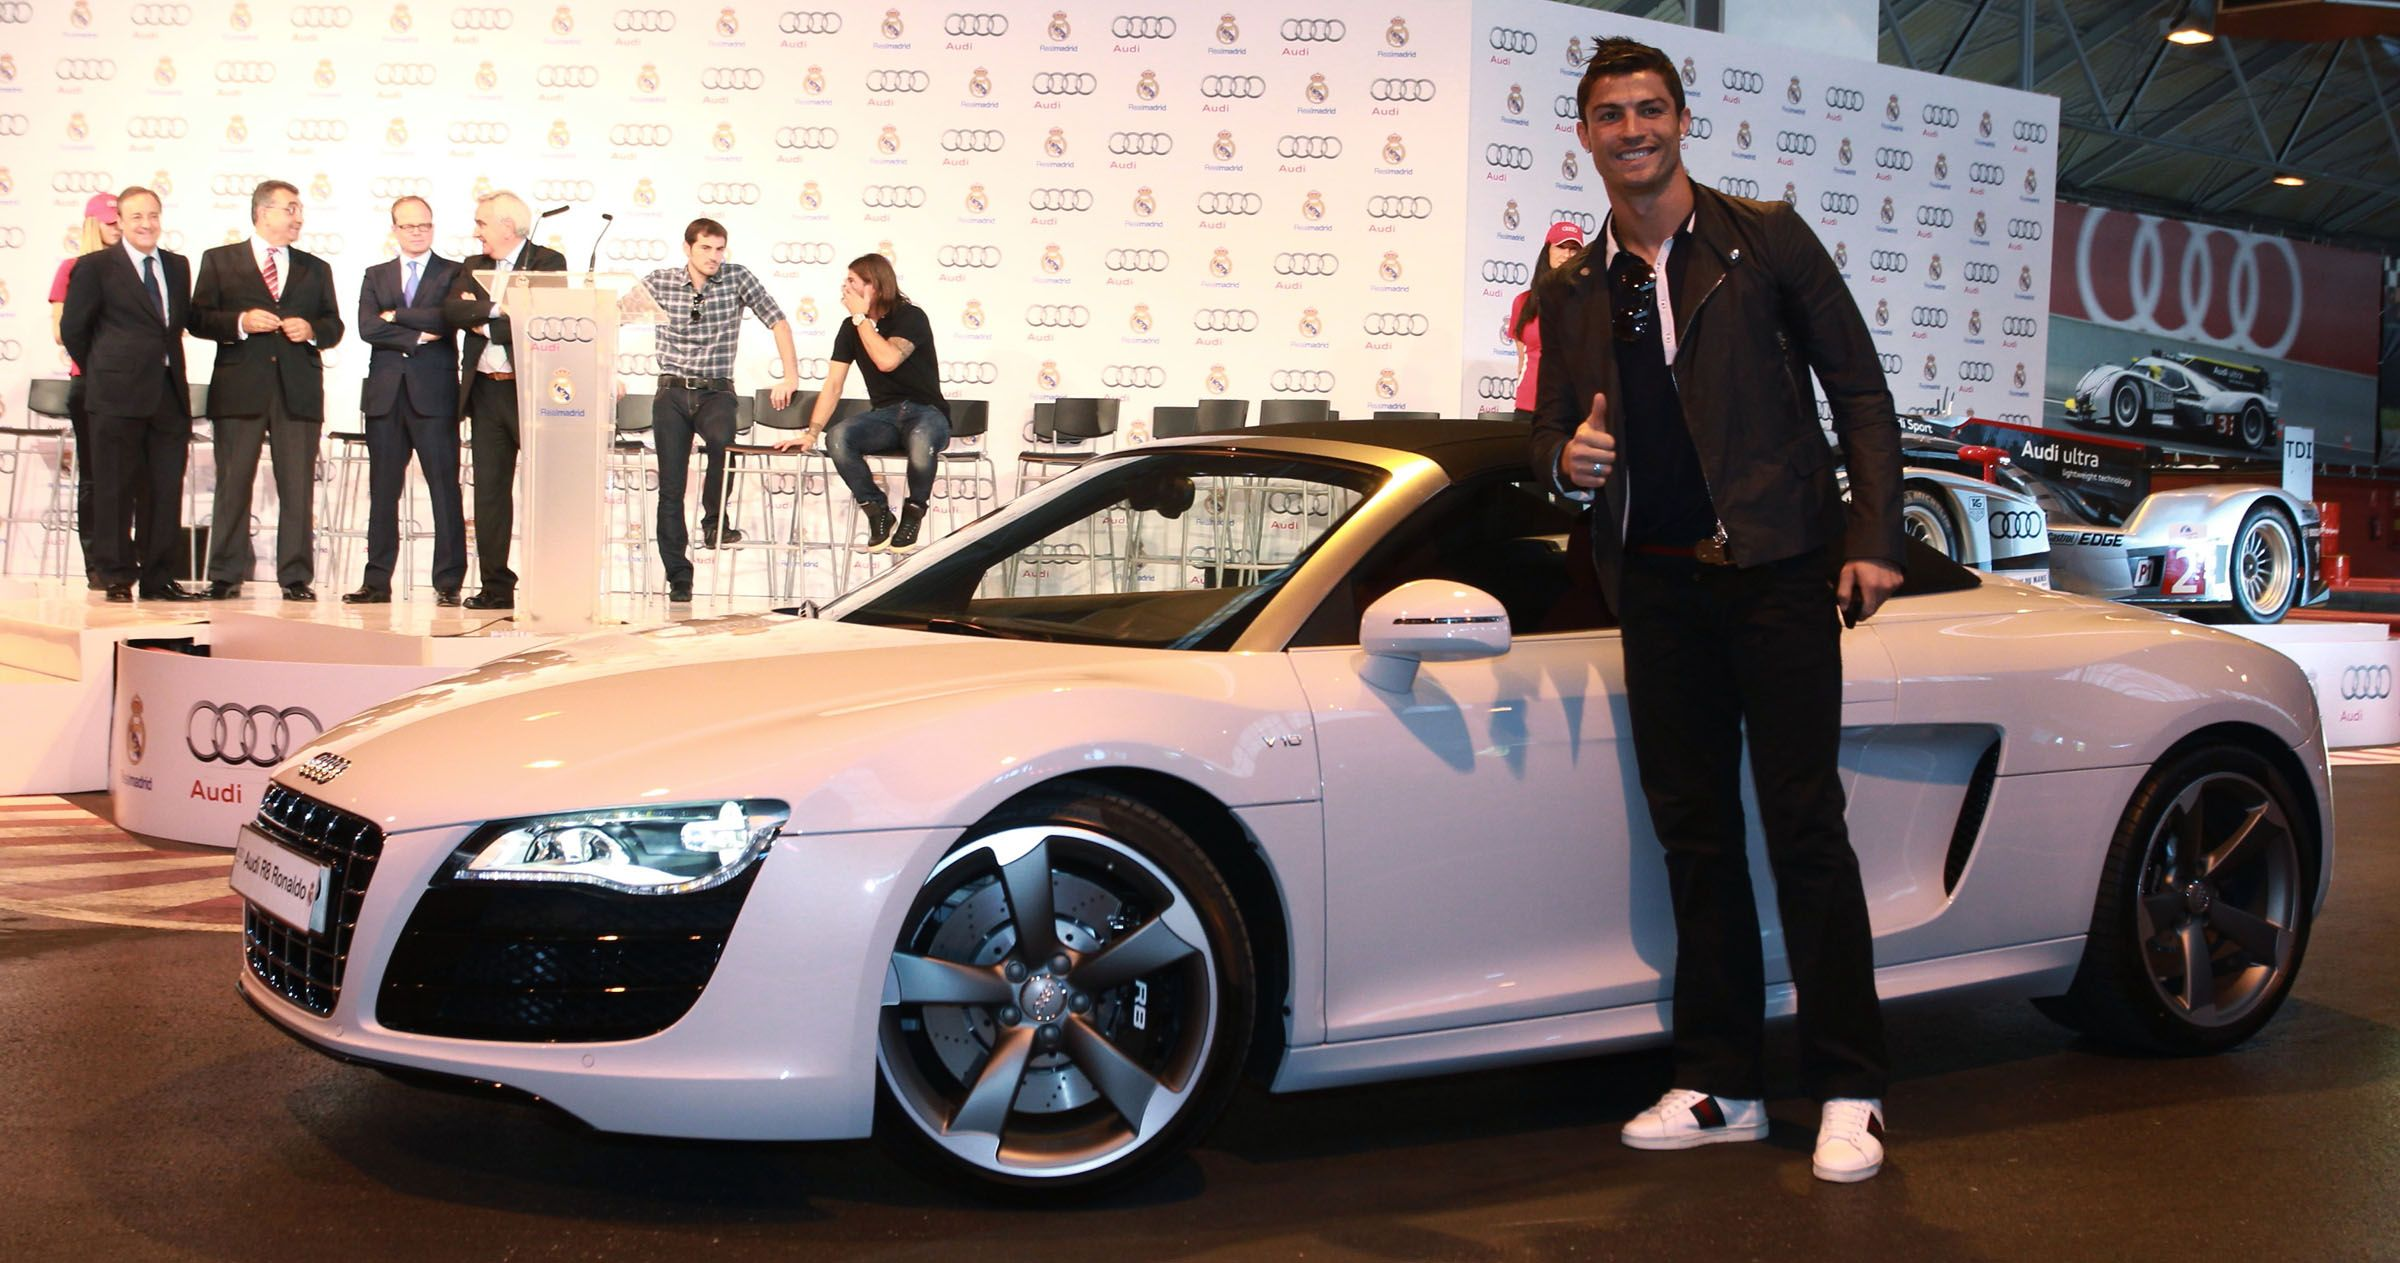 10 Amazing Supercars of Cristiano Ronaldo